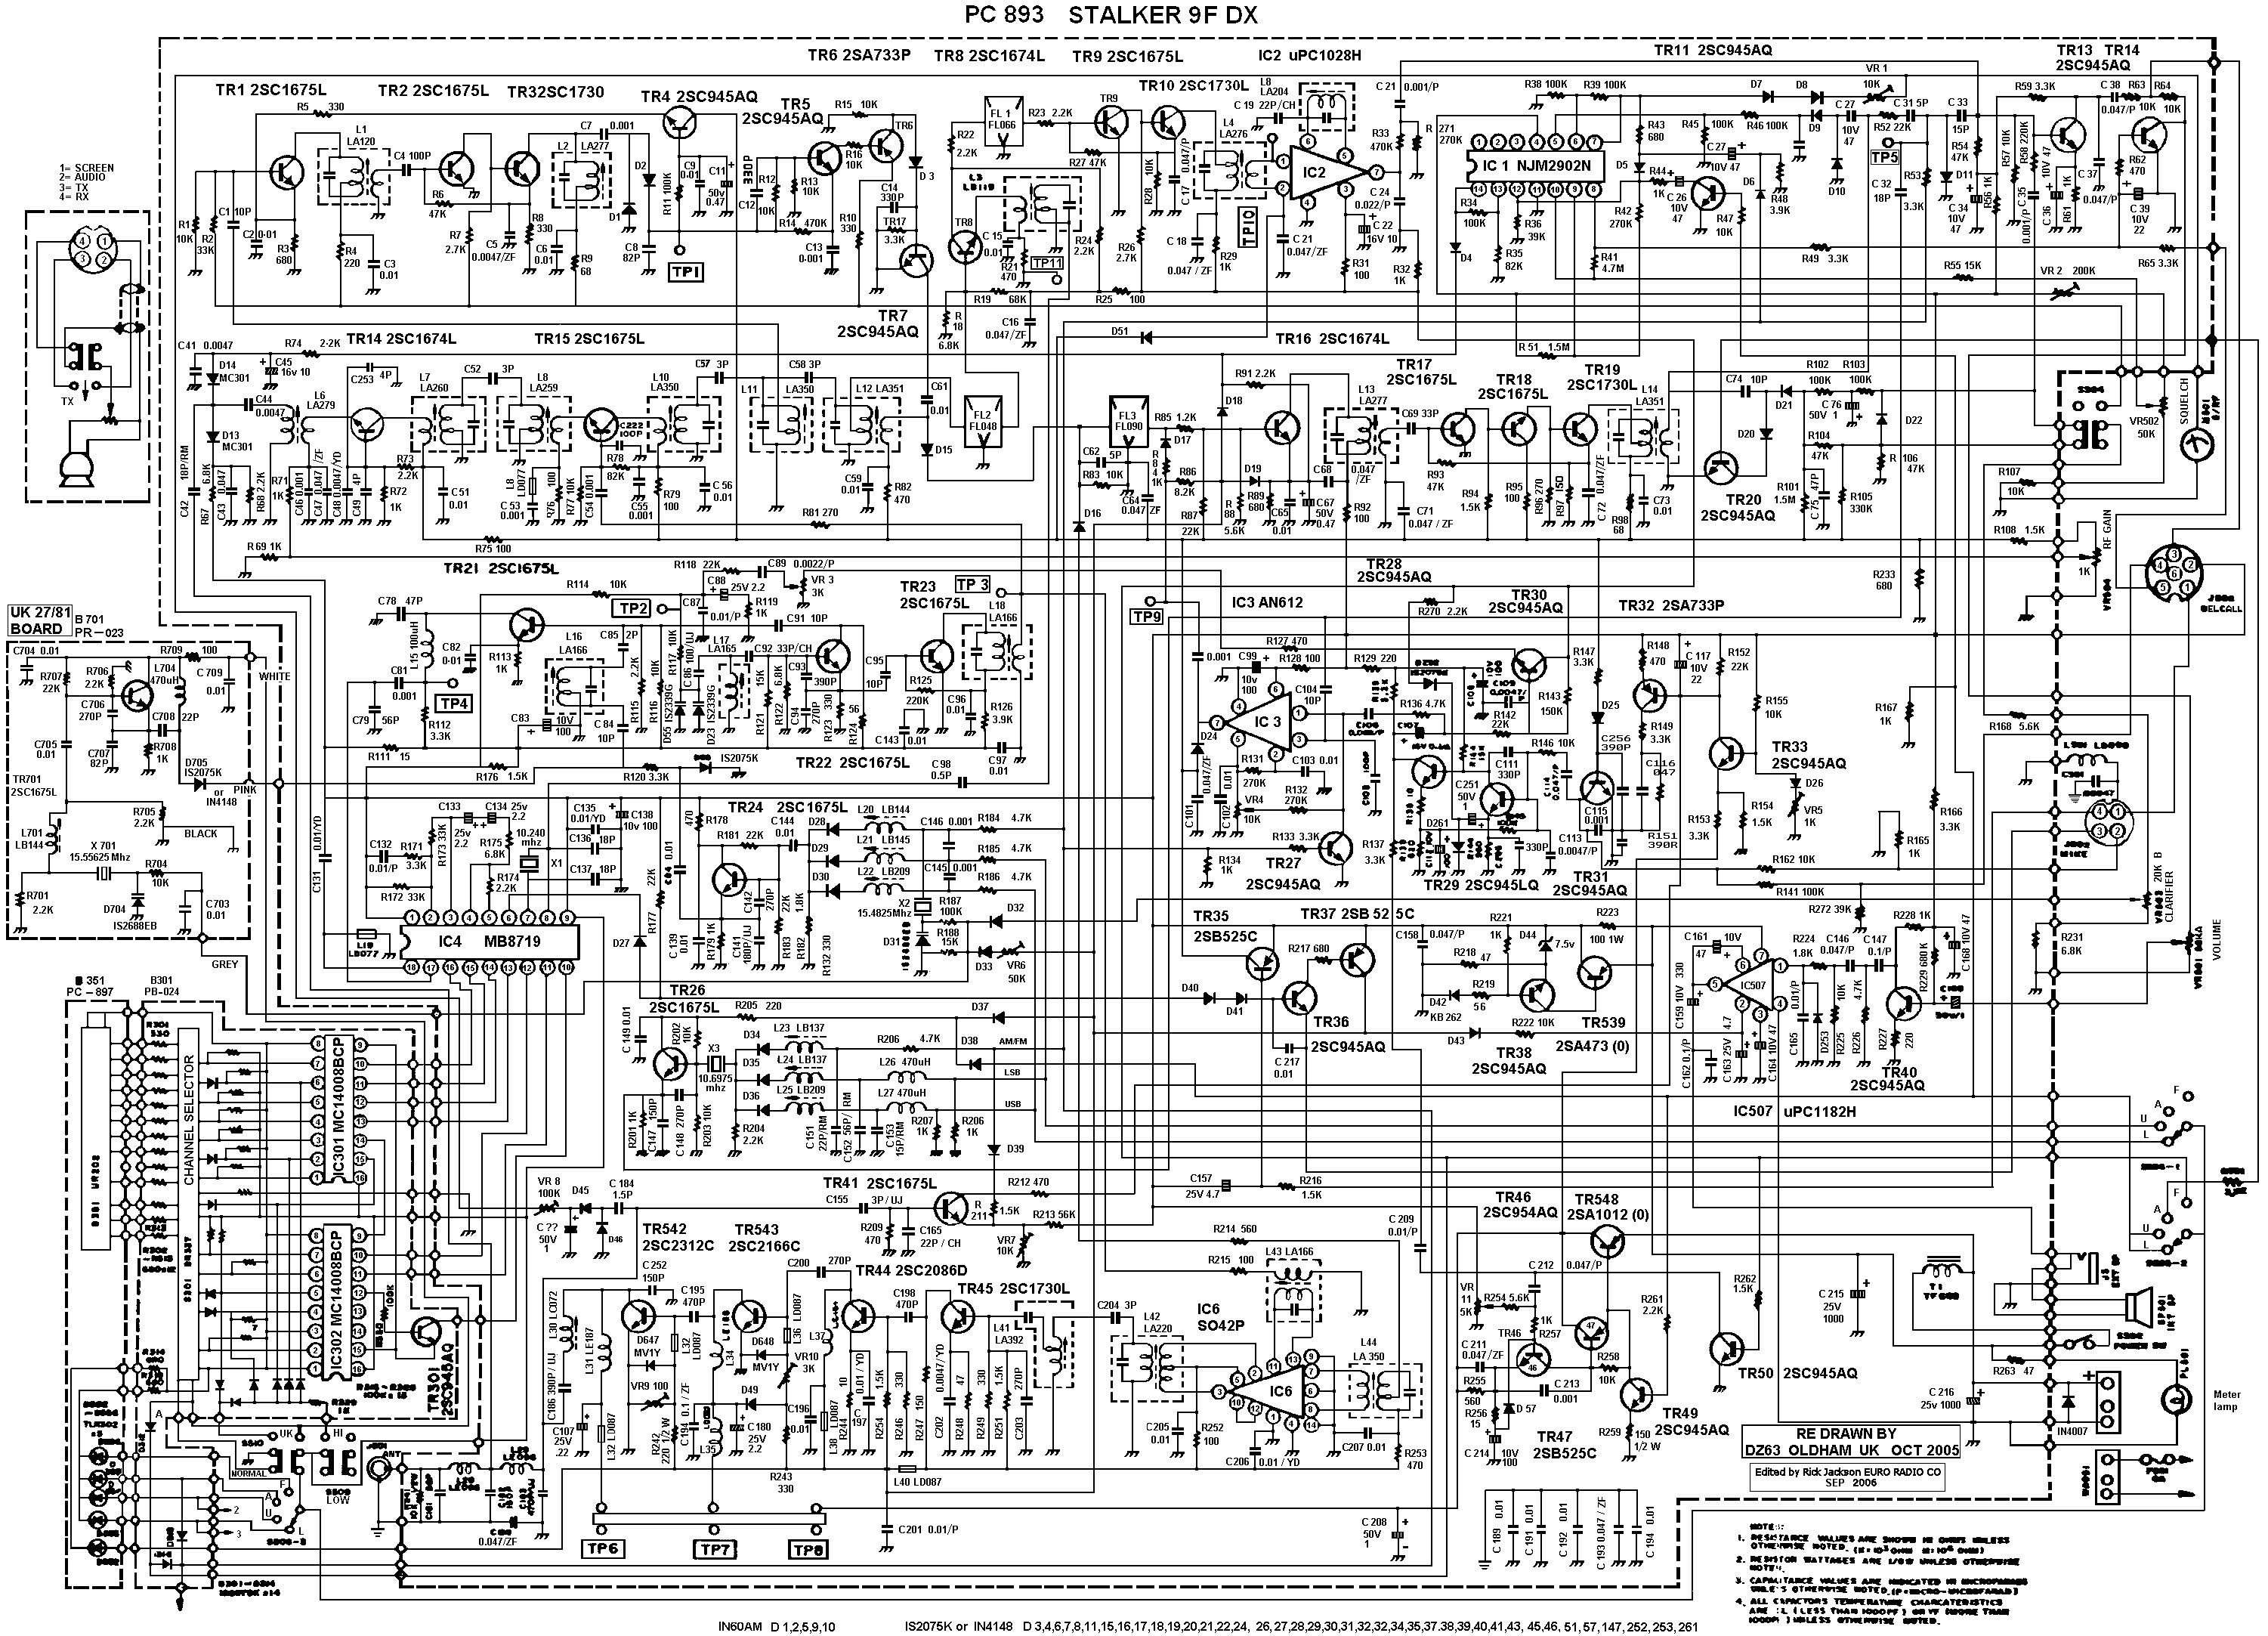 381f91856c8e3d5a8624ba977cca4625 image result for circuit diagram client_iot_平面 pinterest circuit diagram pdf at bakdesigns.co